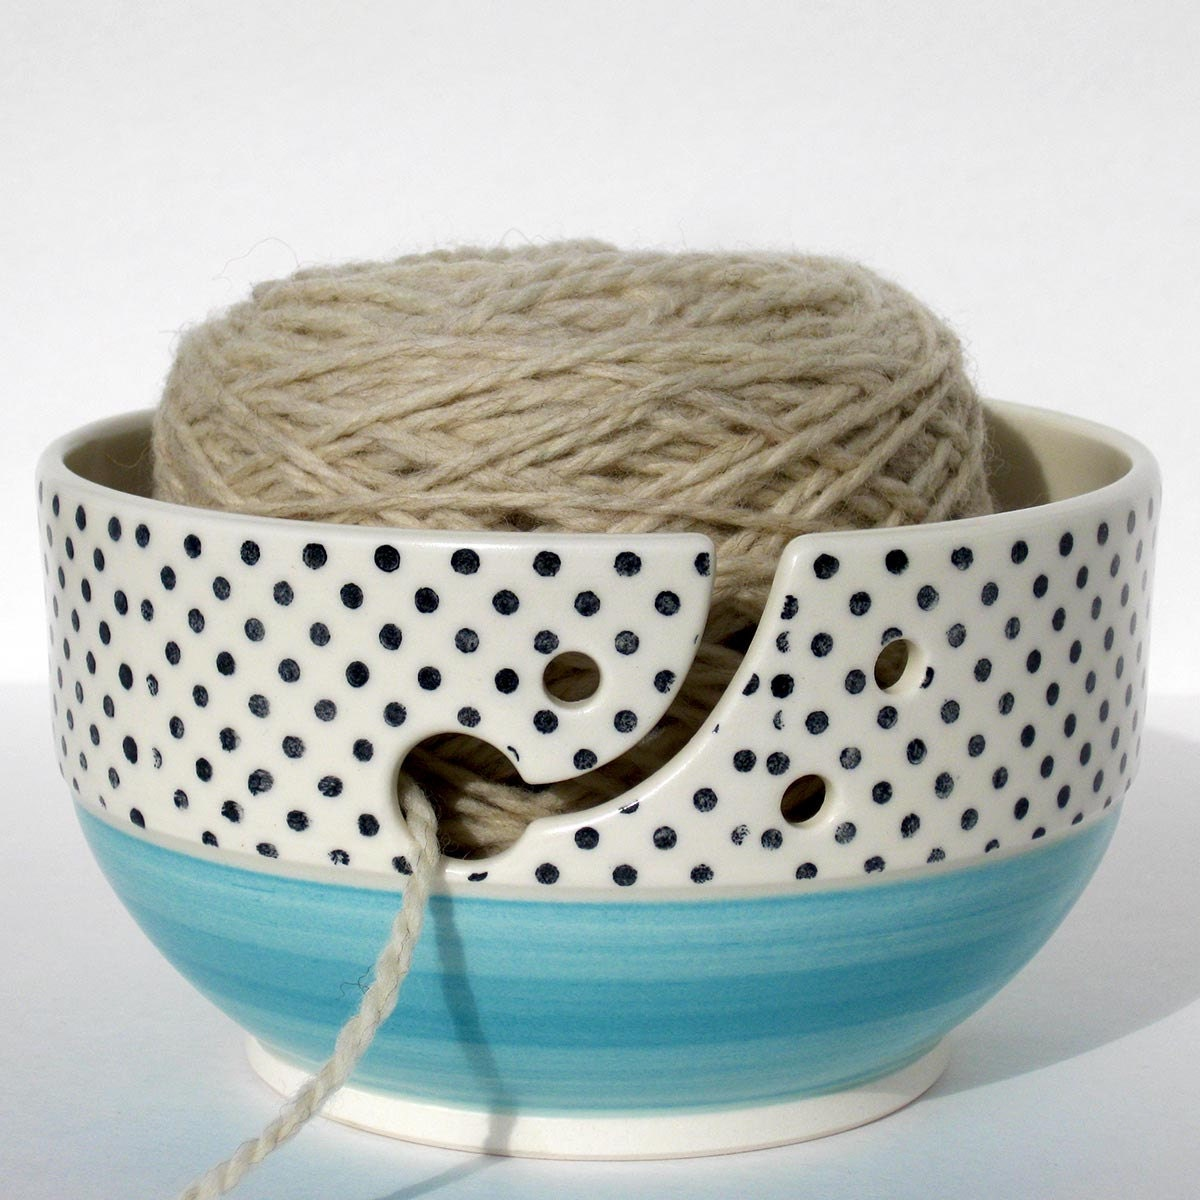 Knitting bowl Large ceramic polka-dot wool bowl